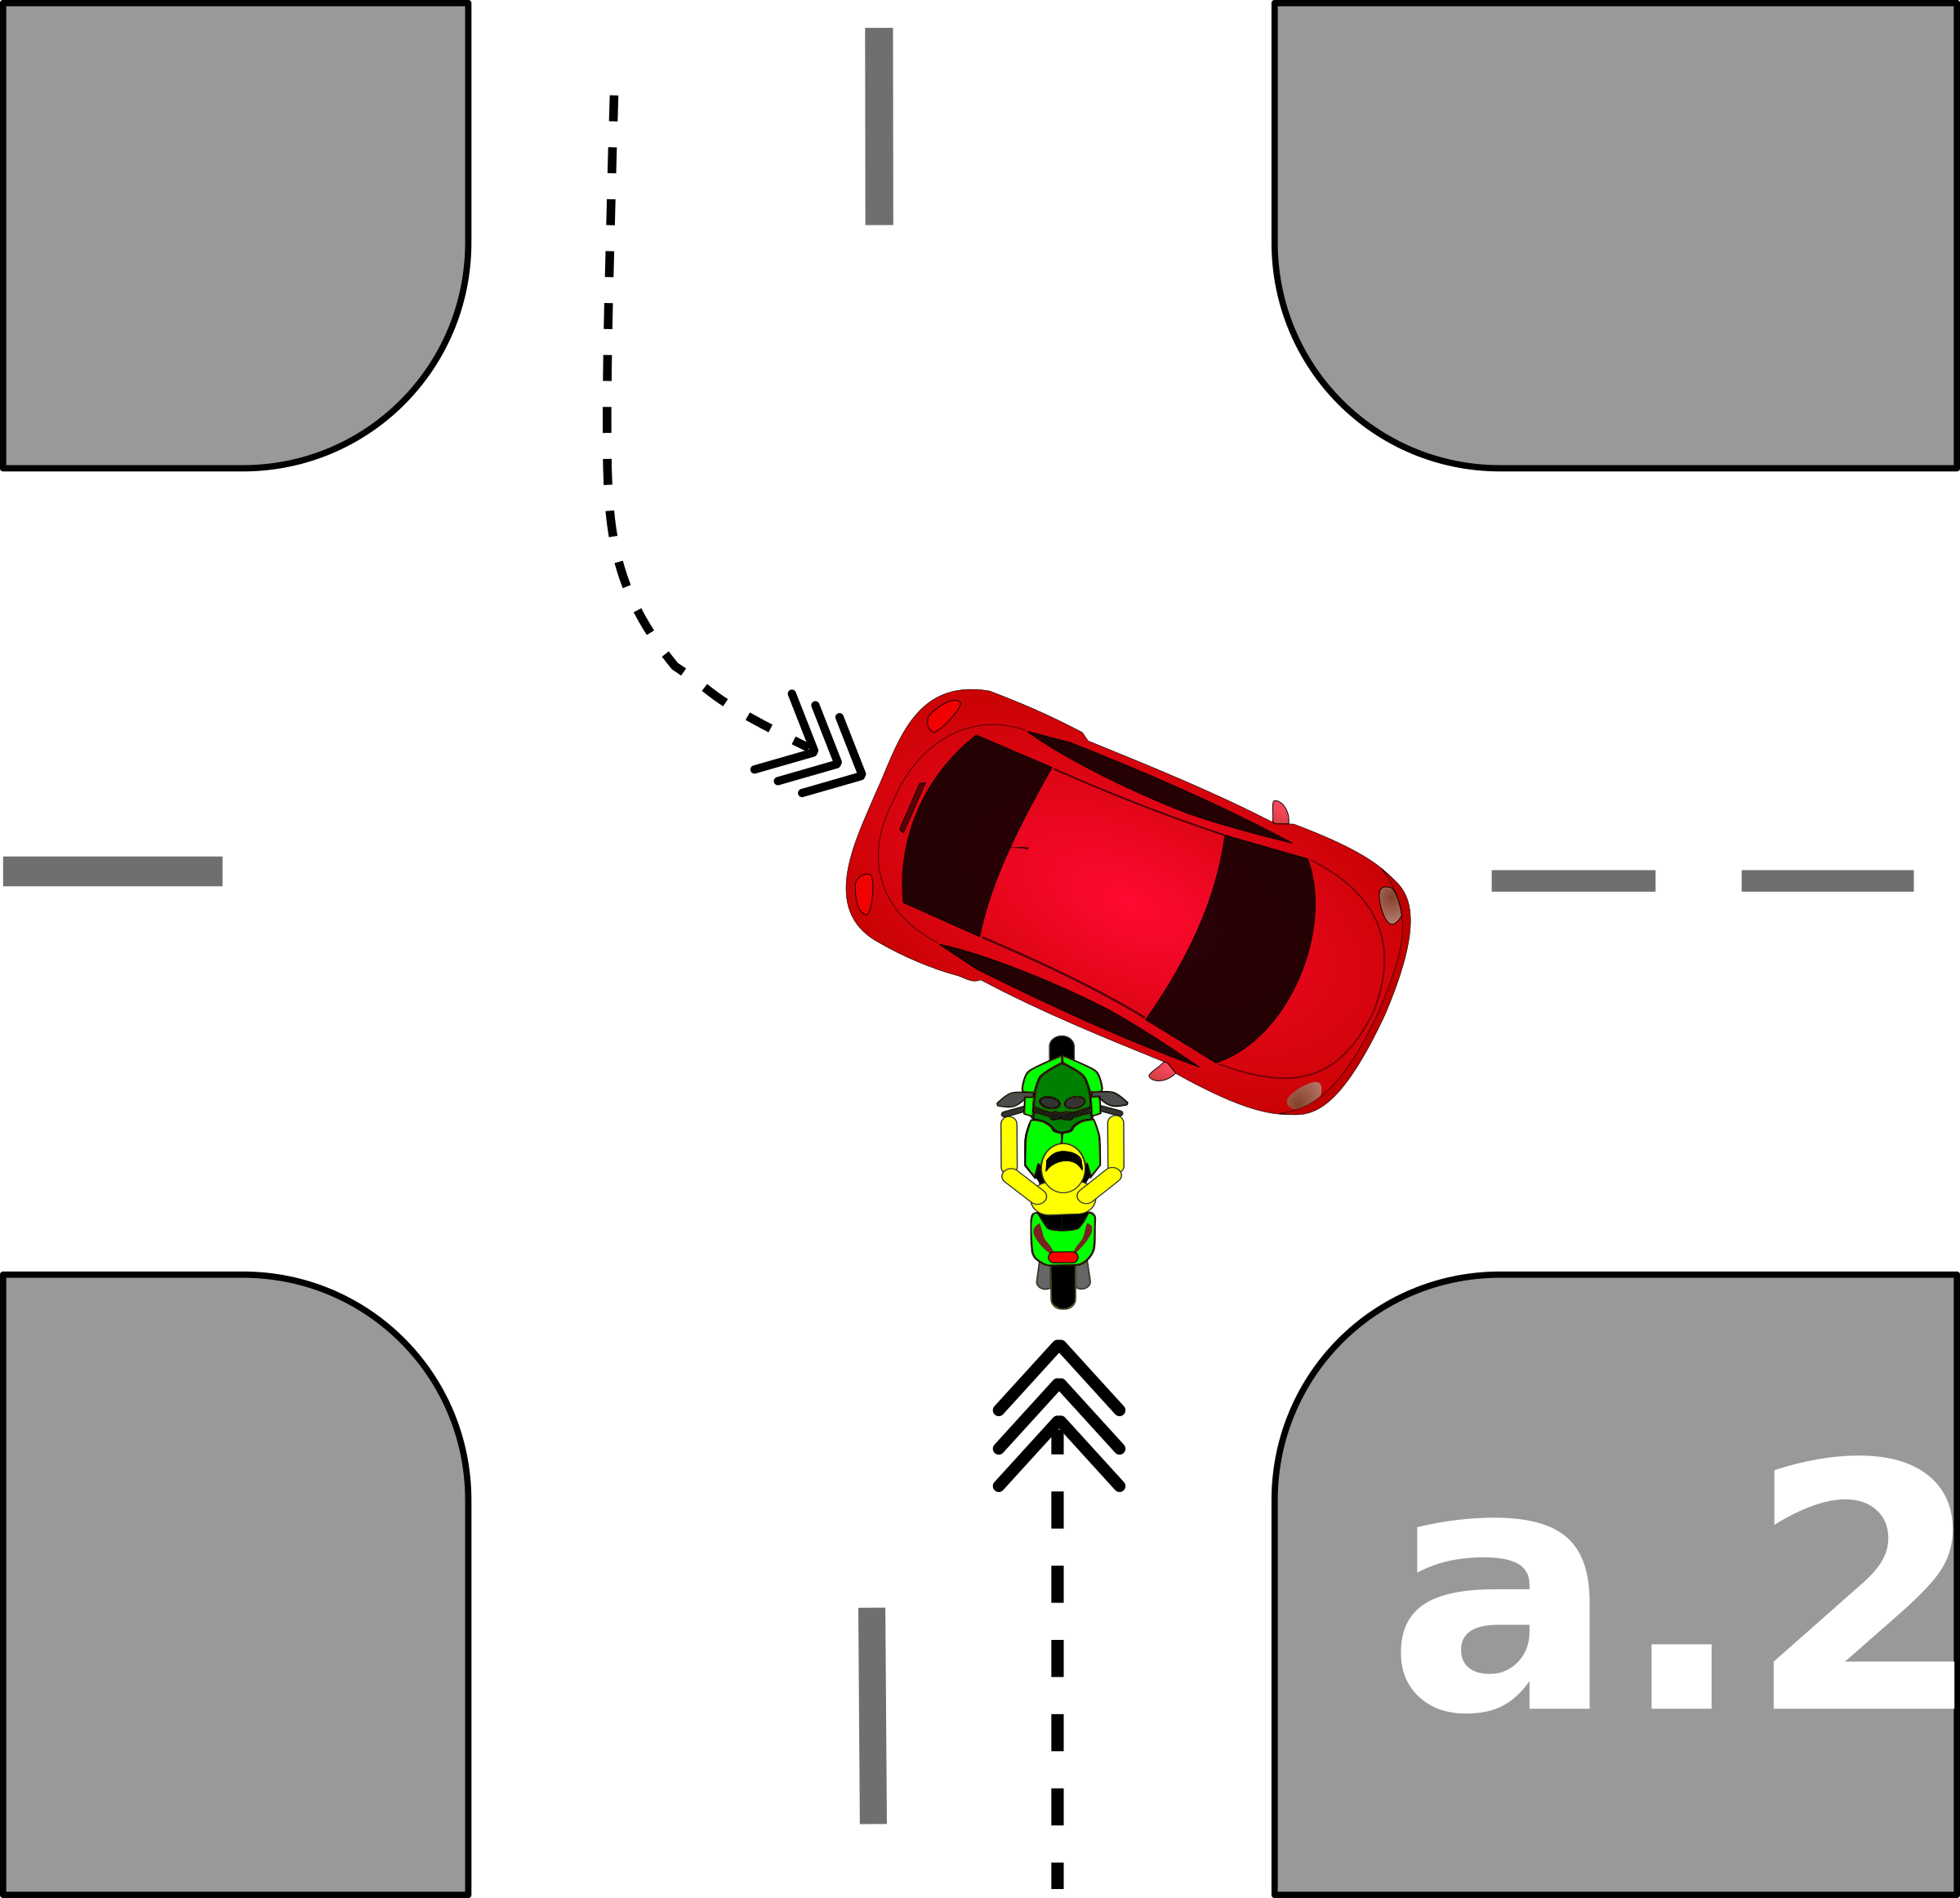 traffic accident pictograms a.2 by Gusta